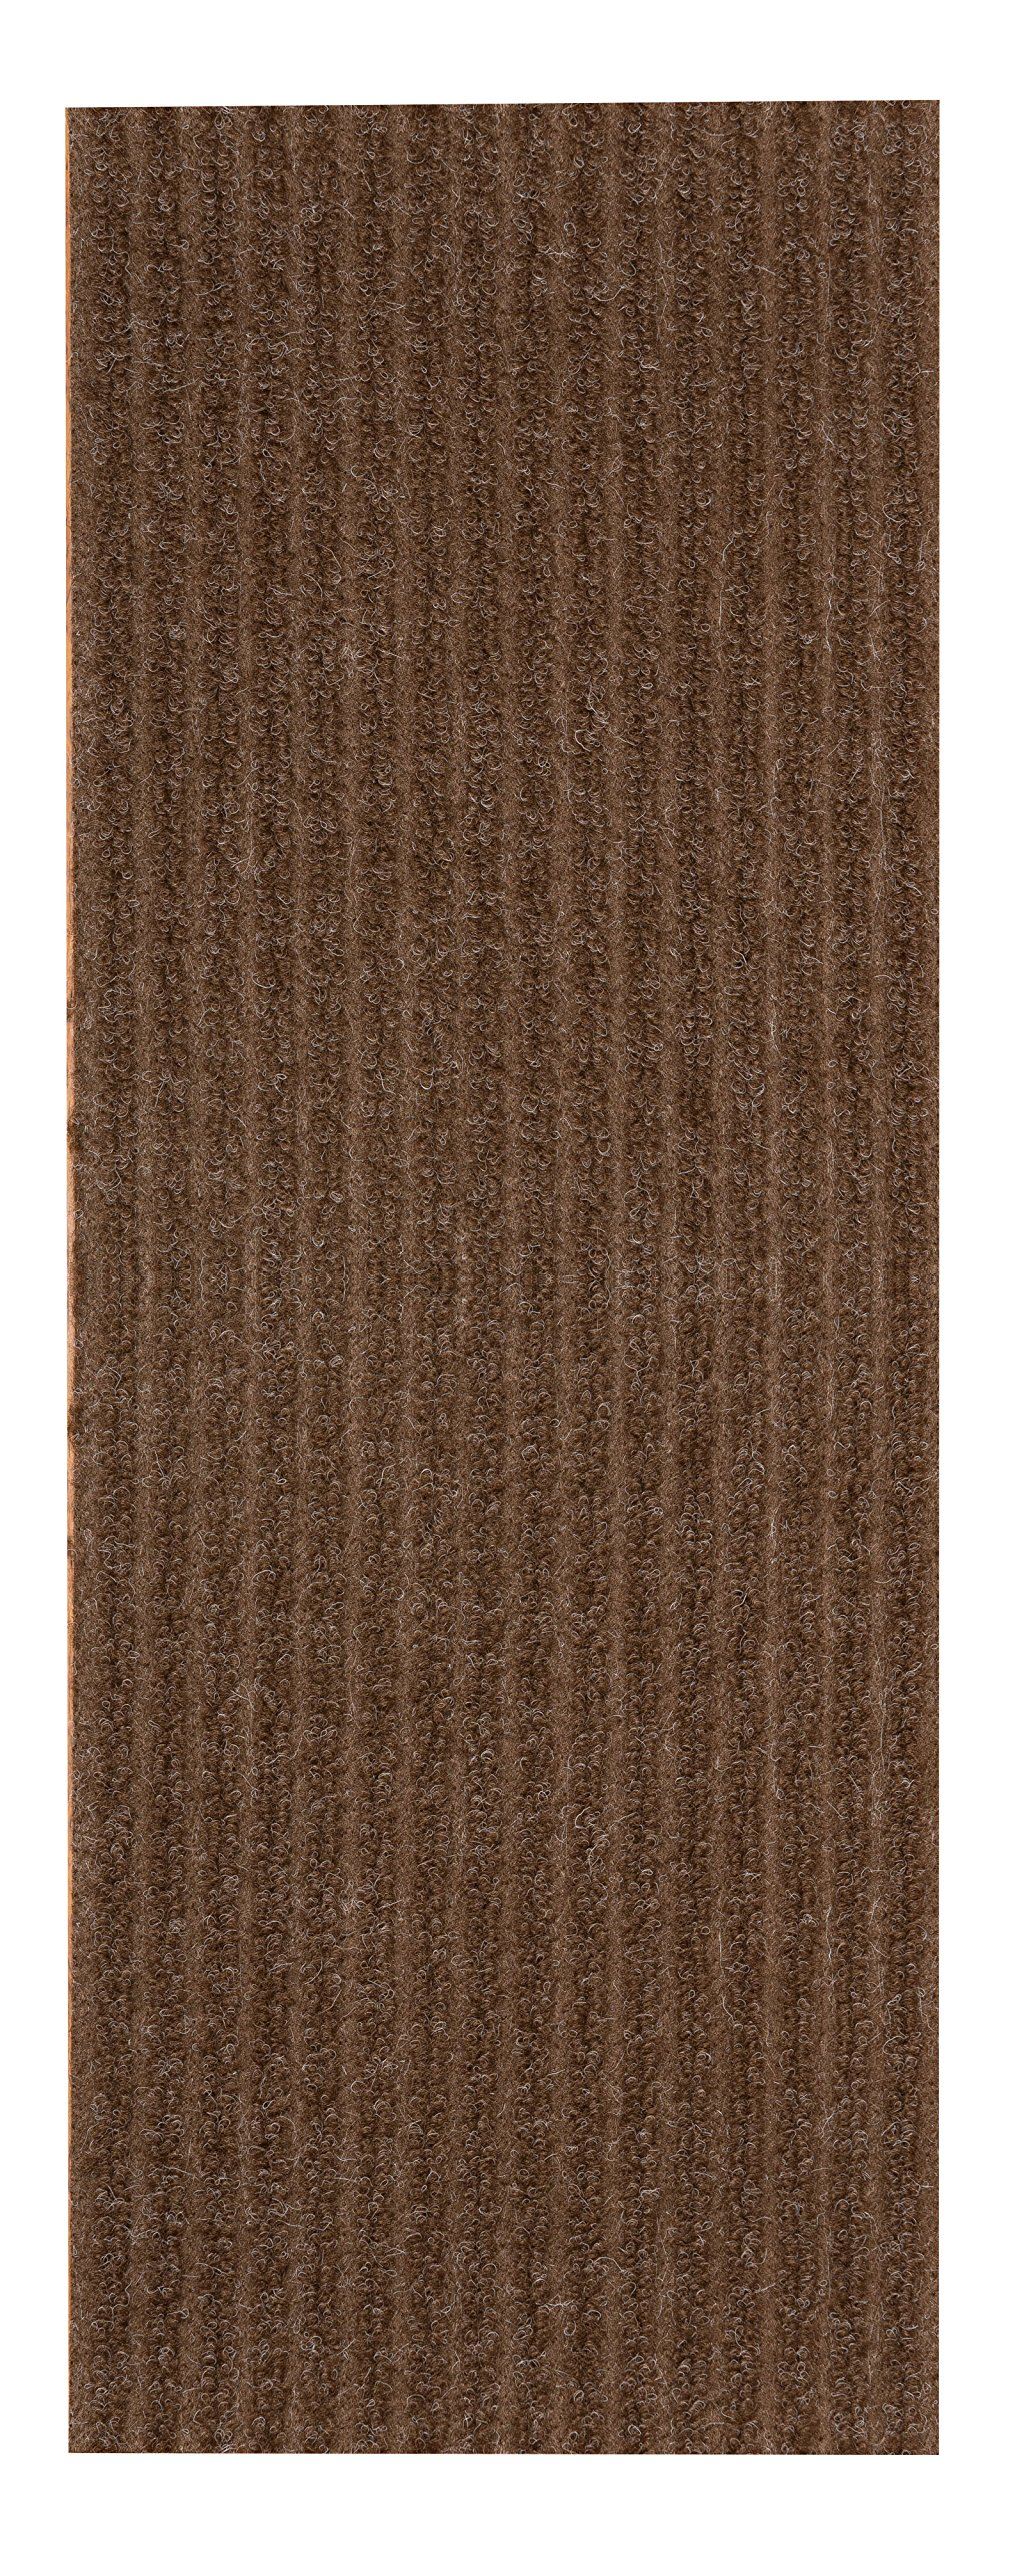 NaturalAreaRugs Halton Carpet Stair Treads - Chocolate, Beige, Charcoal and Red, 9'' x 29'' Set of 13